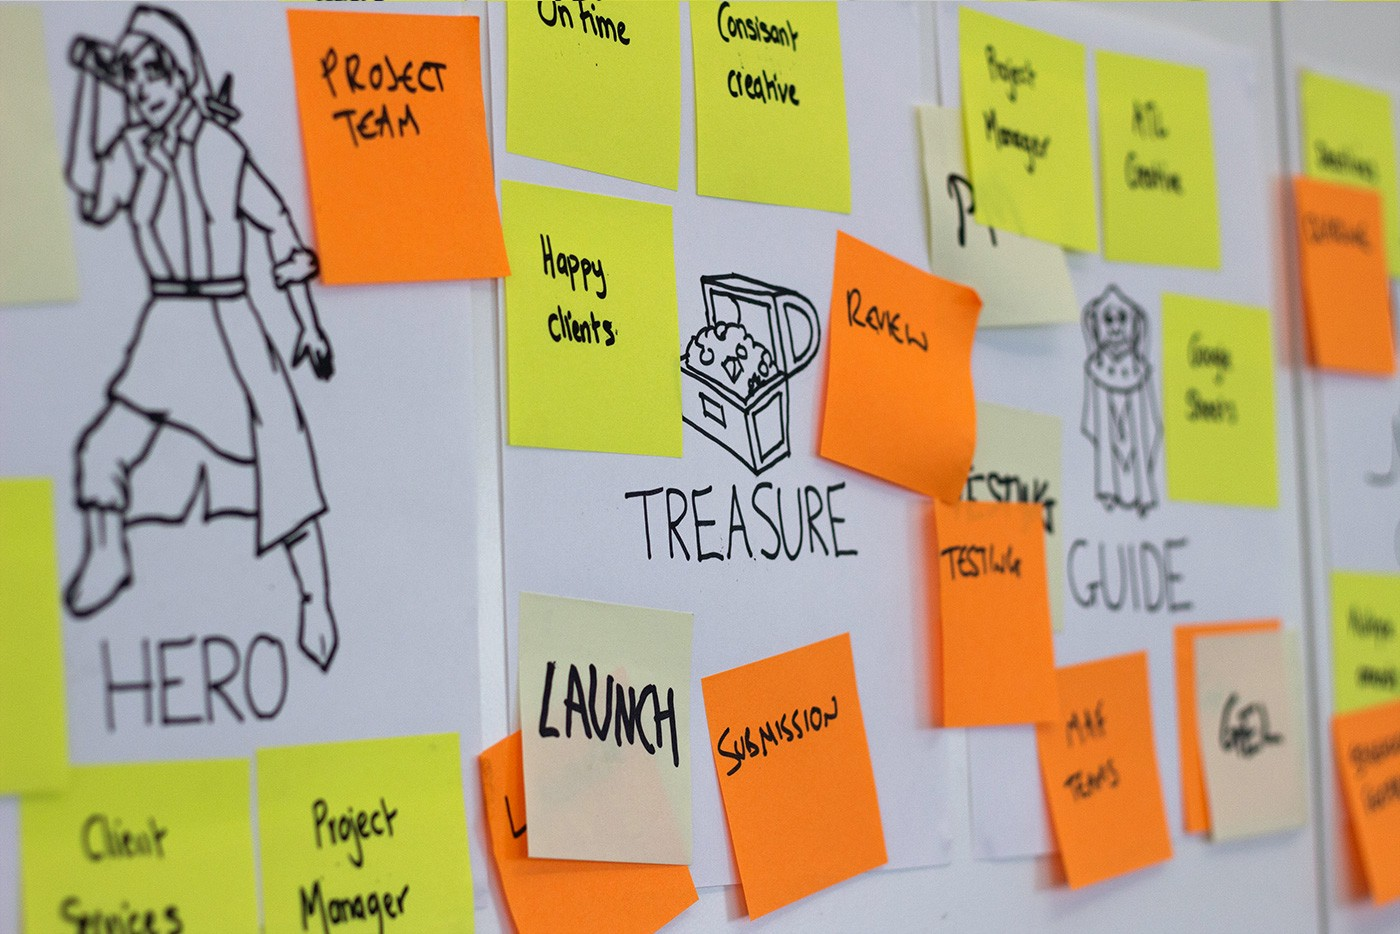 Agile Fun Games don't run project retros, play dungeons and dragons